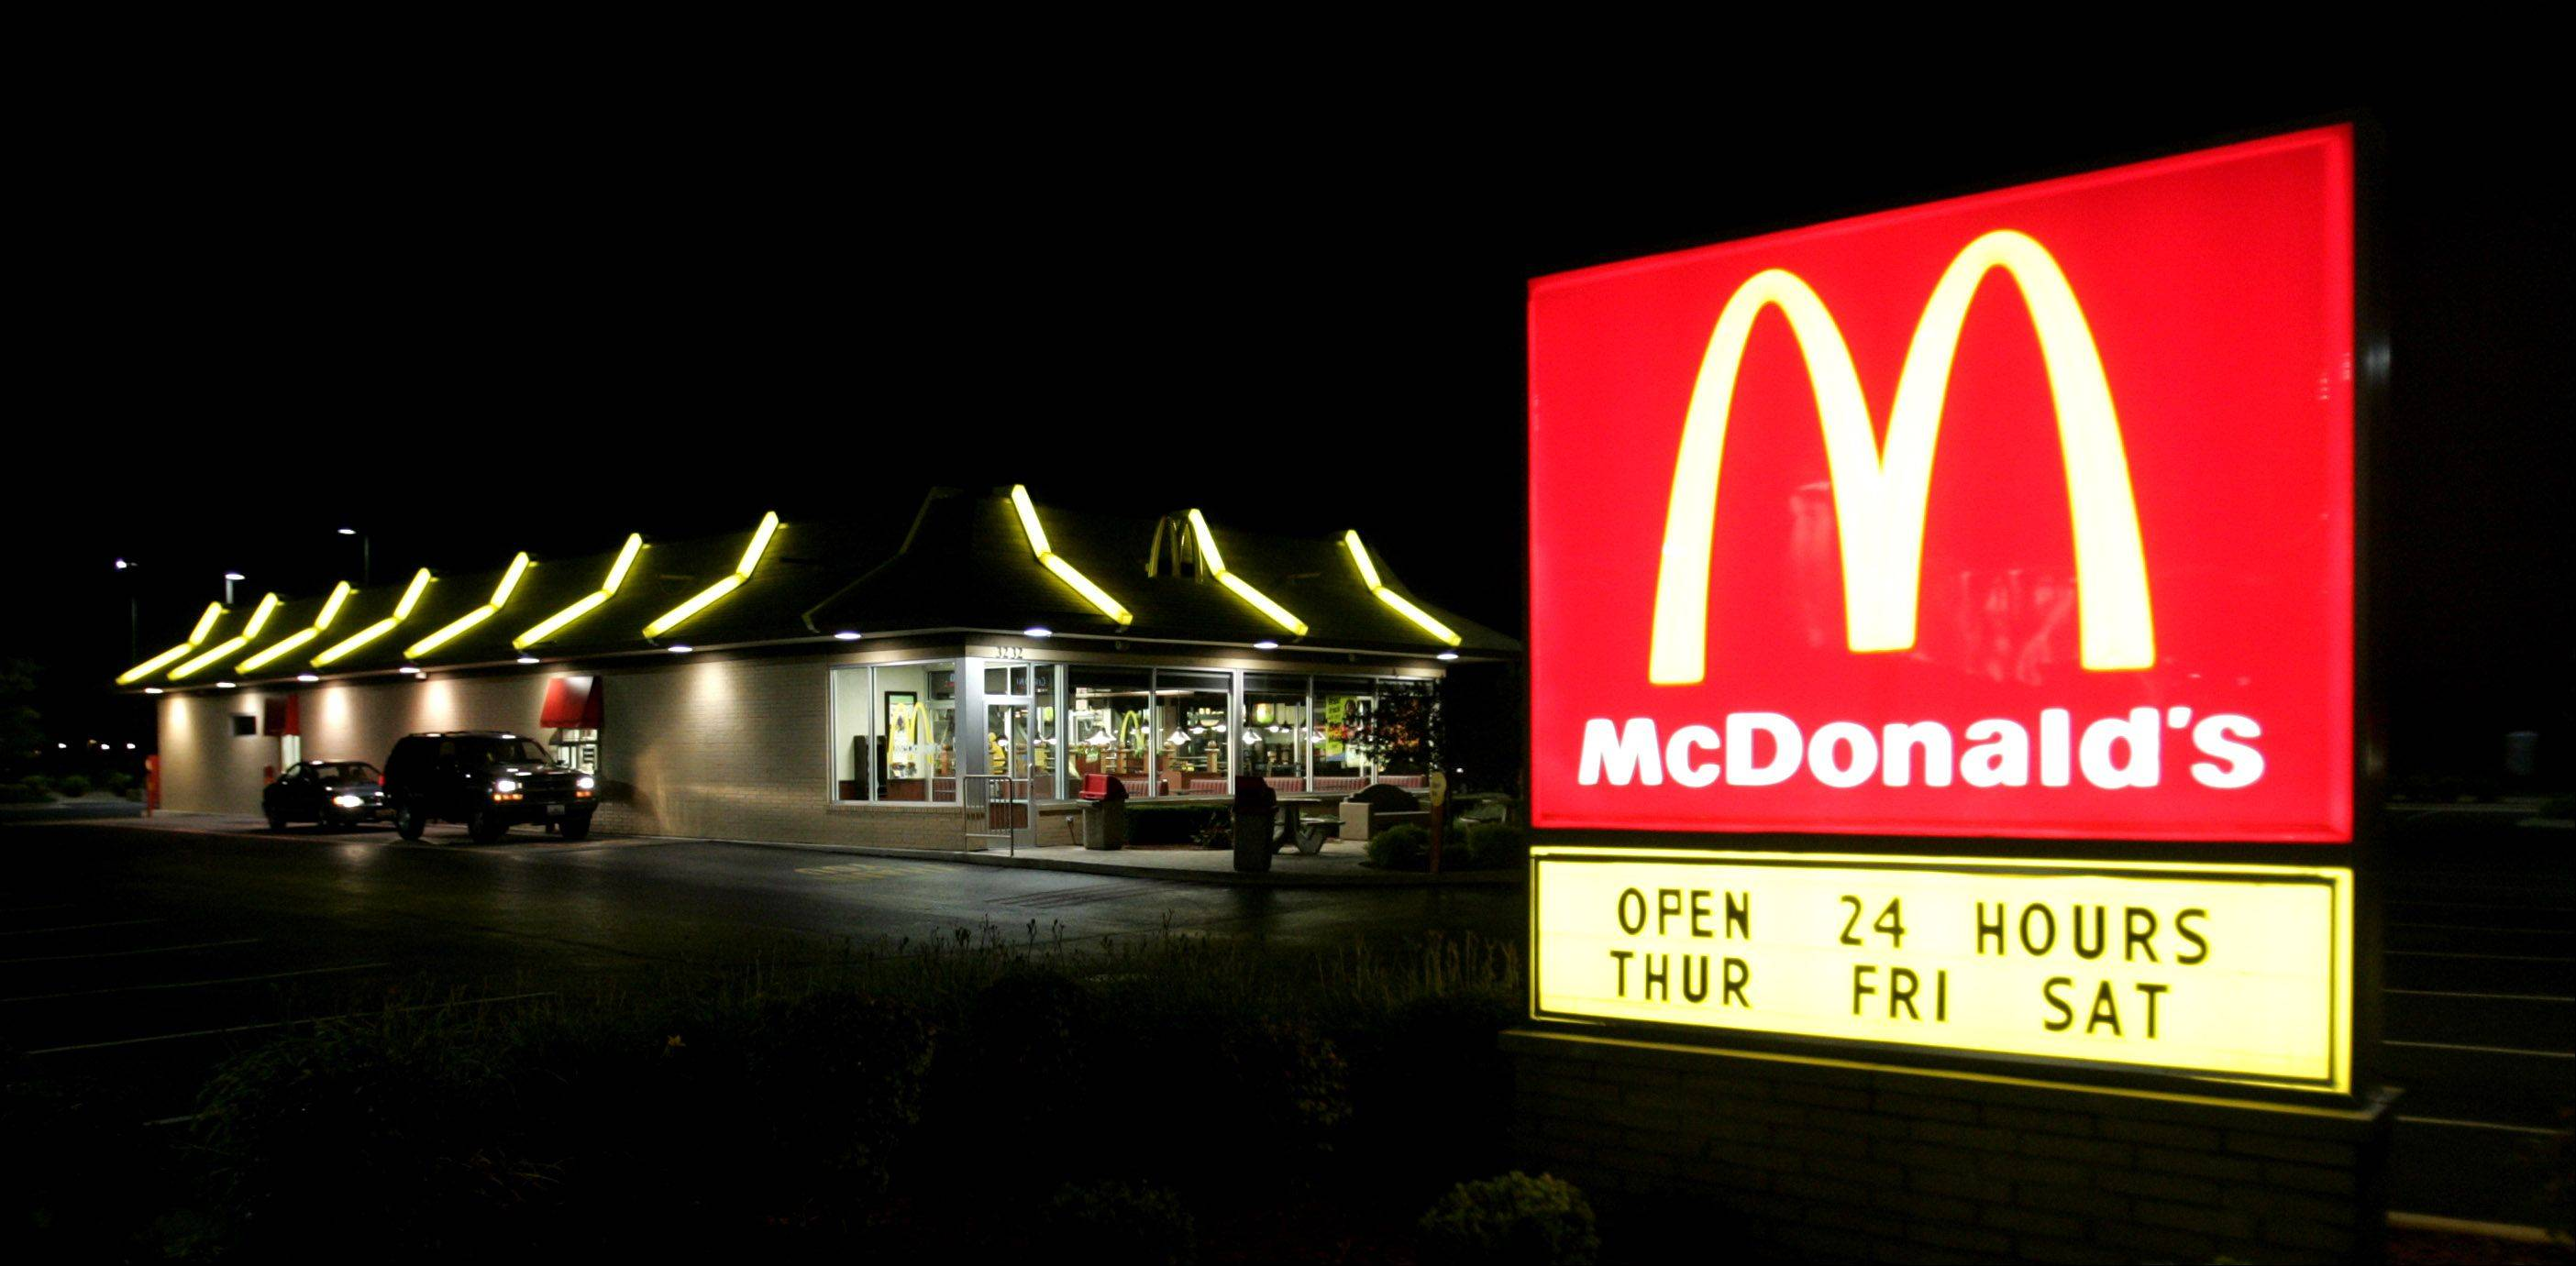 Oak Brook-based McDonald�s is raising its quarterly cash dividend by 5 percent, bringing its fourth-quarter payout to more than $800 million.